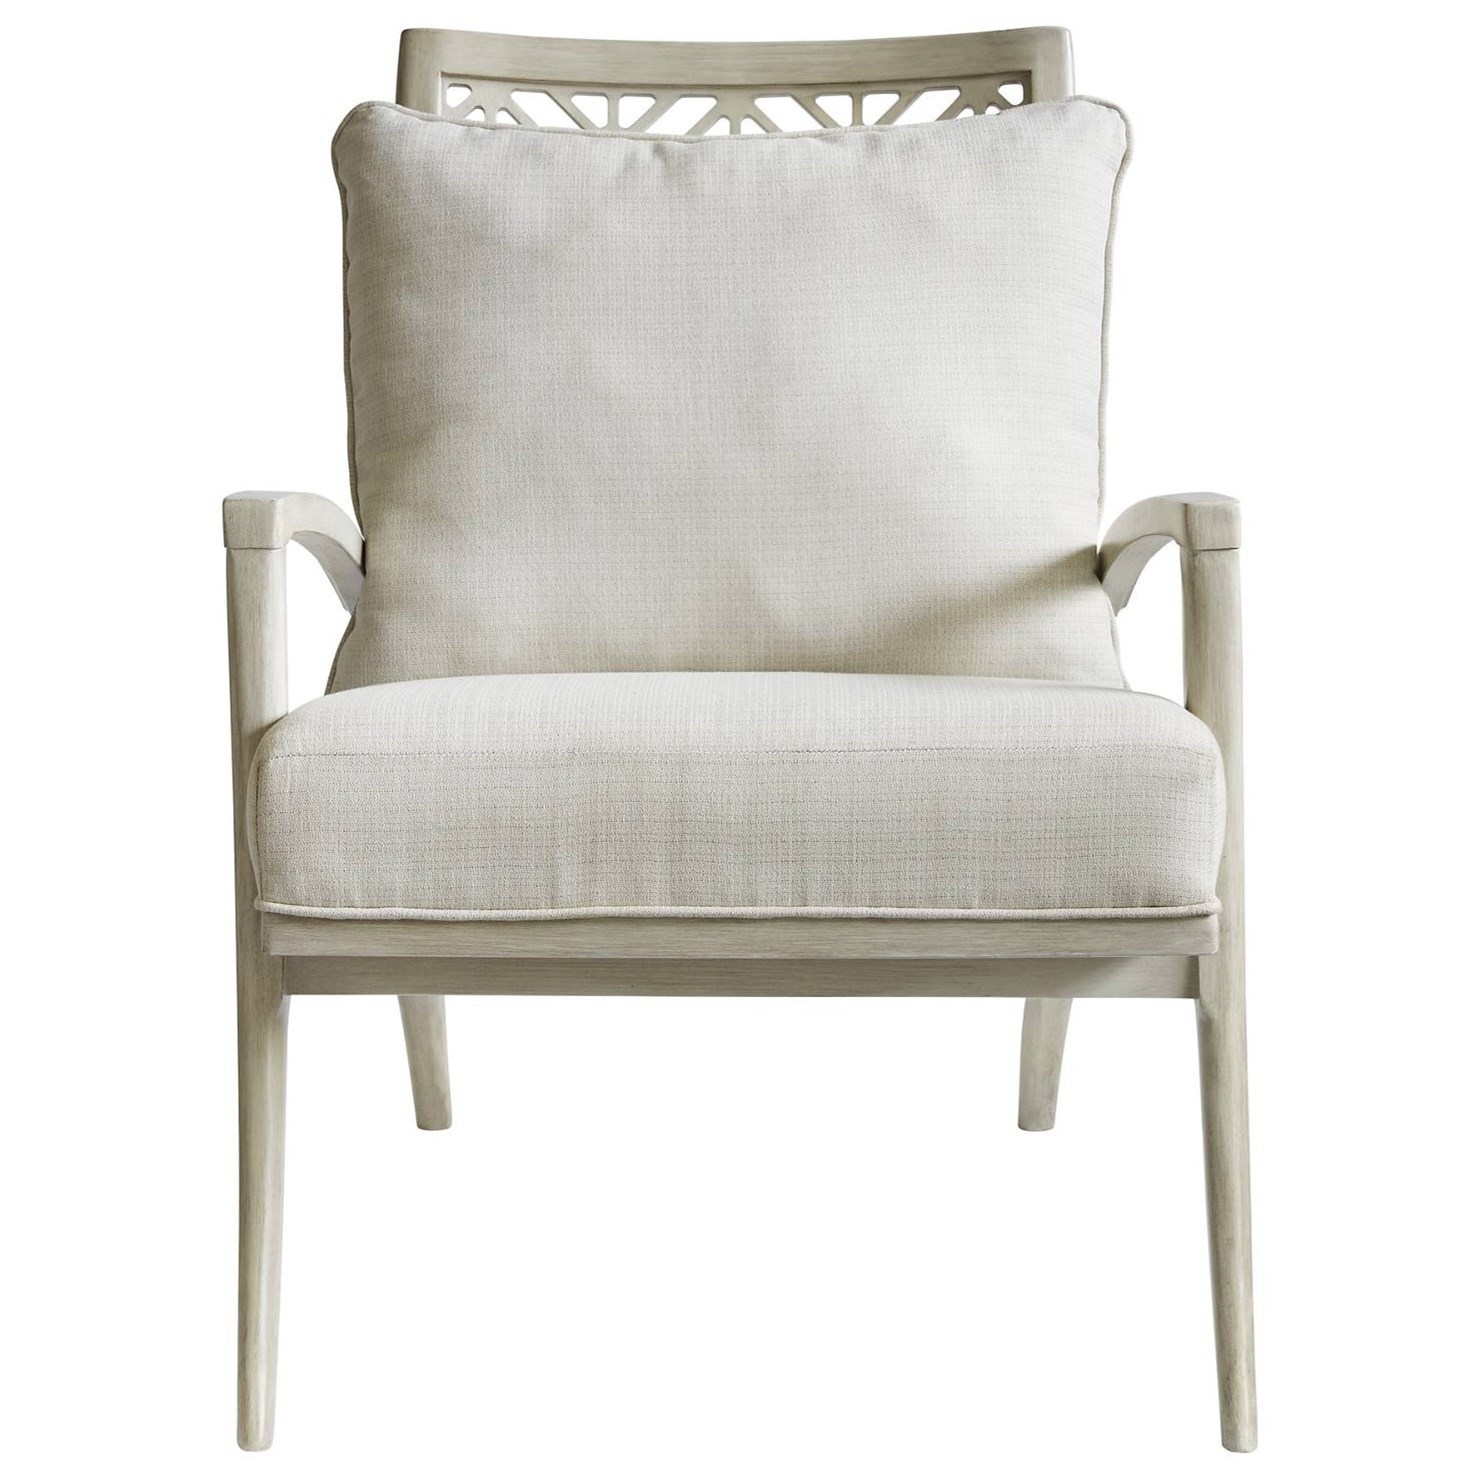 Accent Chairs Melbourne Stanley Furniture Coastal Living Oasis 527 55 74 Catalina